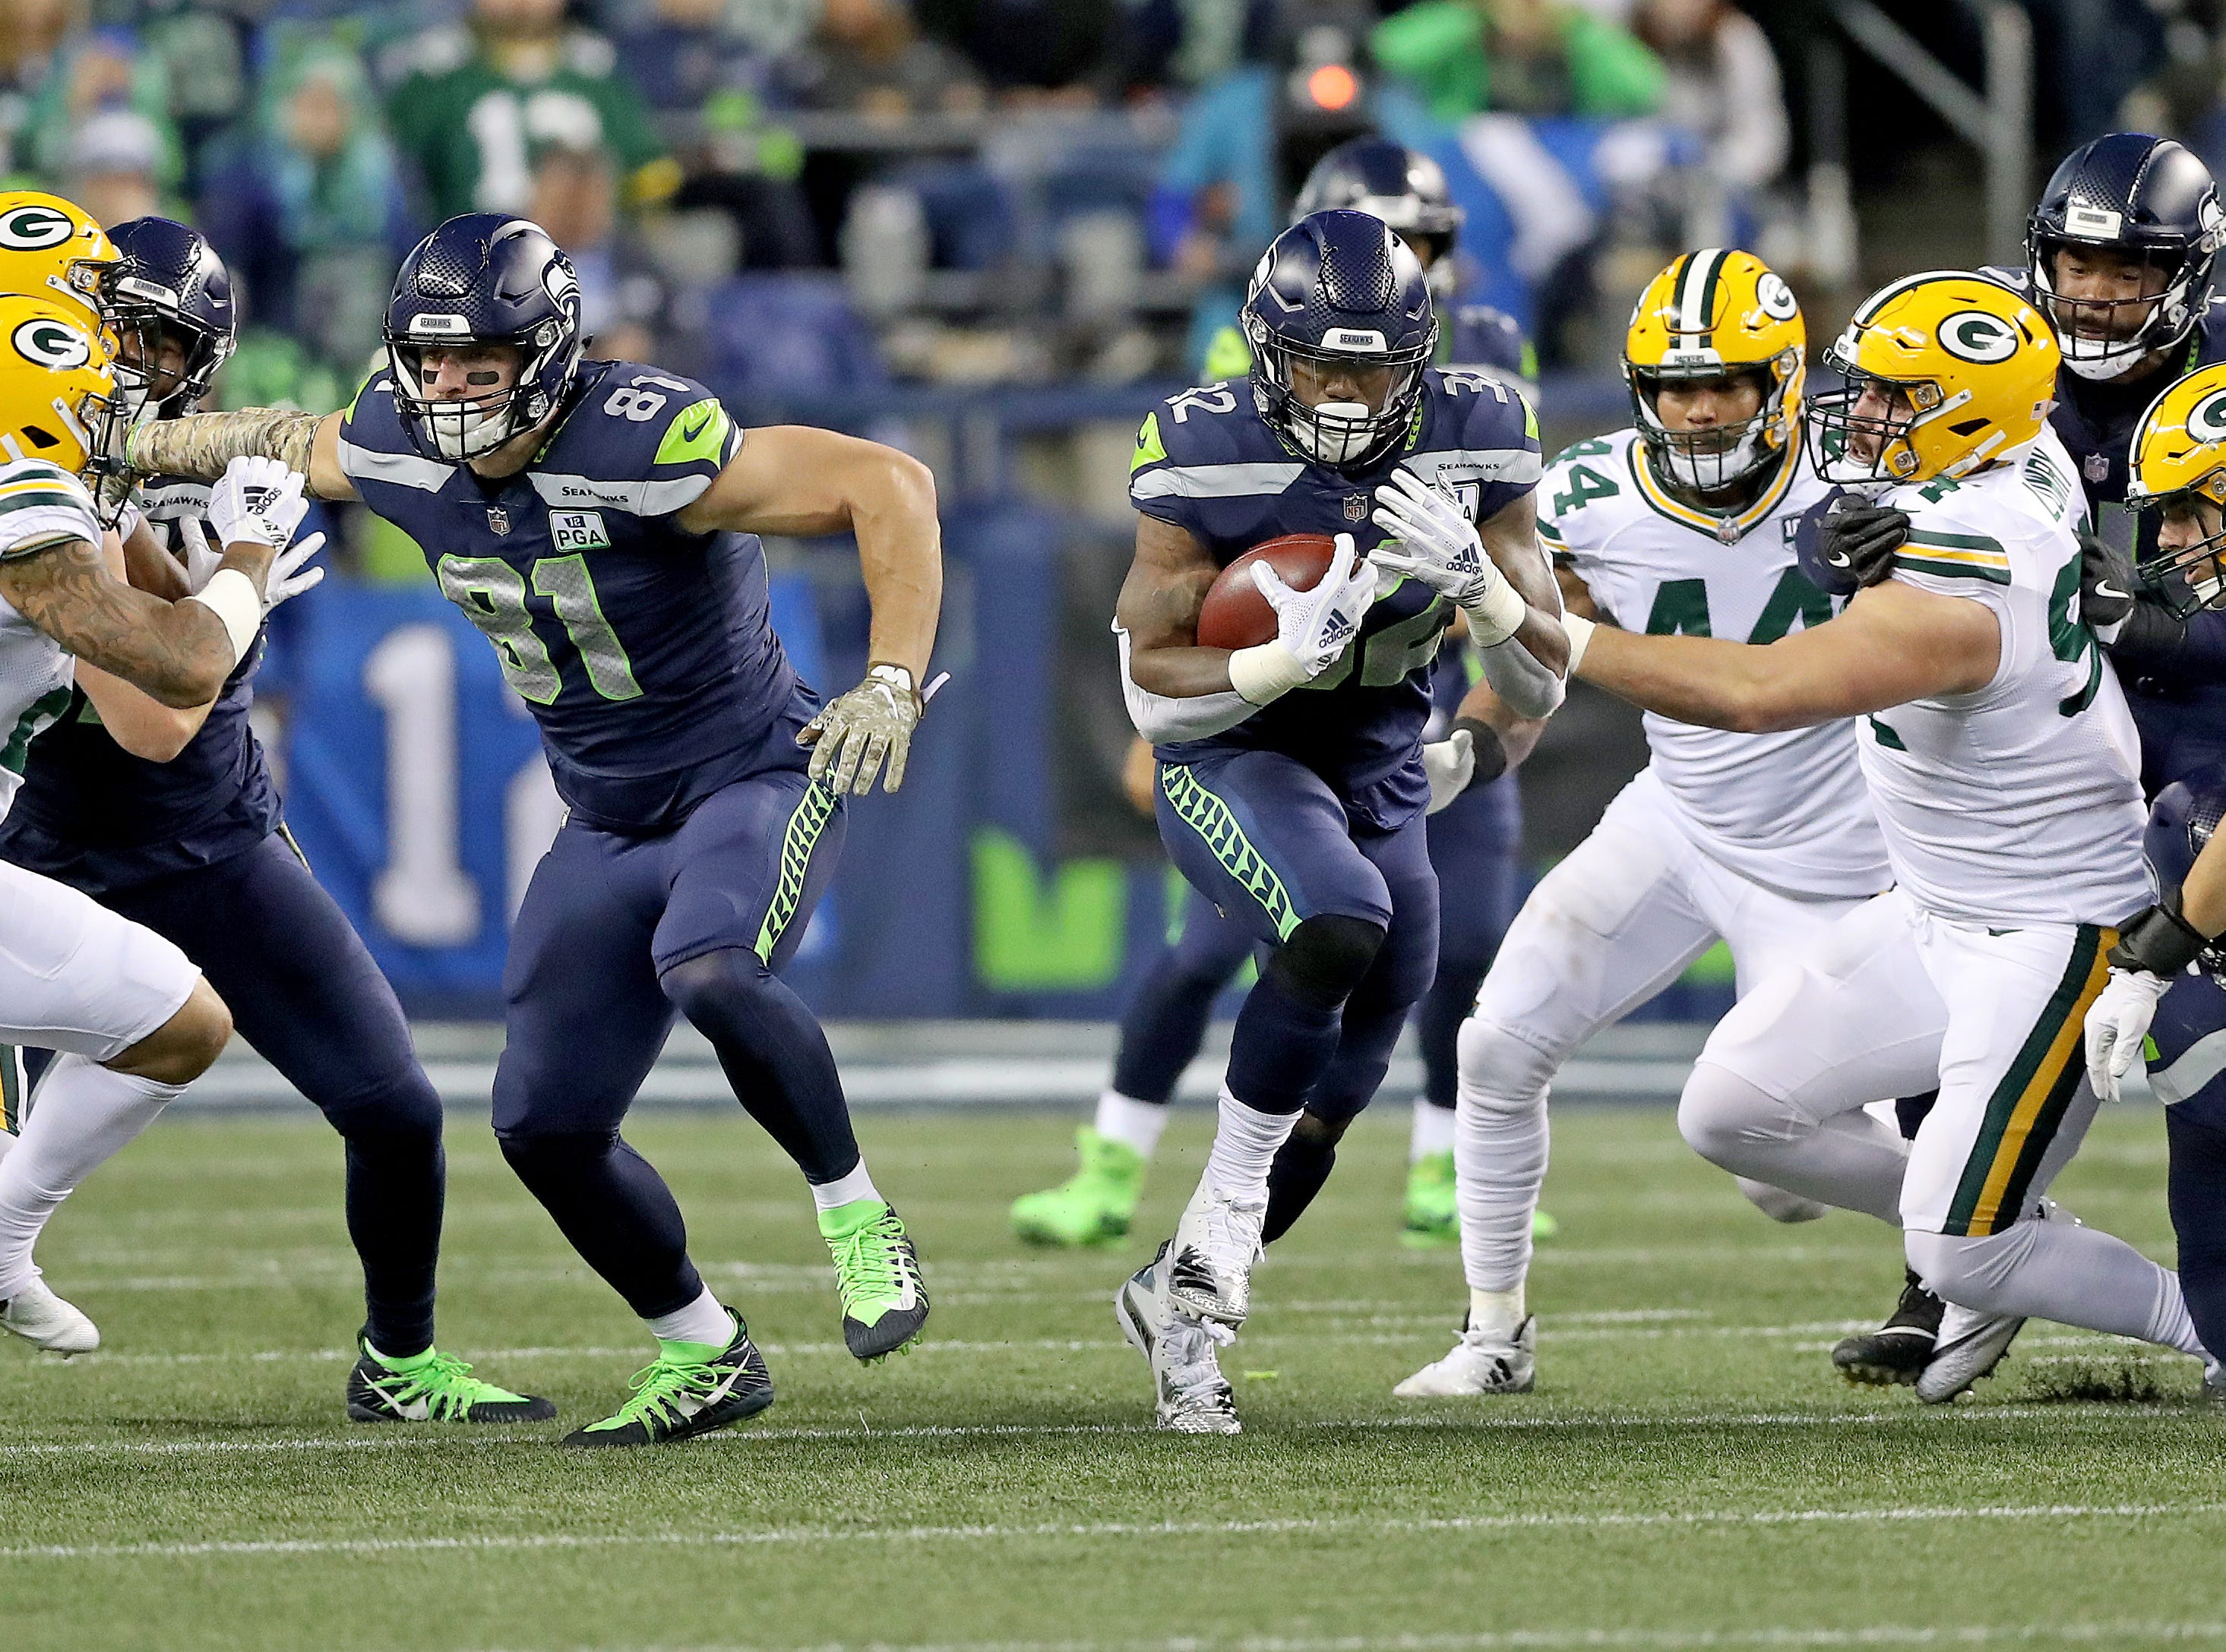 Green Bay Packers defensive end Dean Lowry (94) and cornerback Jaire Alexander (23) can't close a gaping home in the defensive line as running back Chris Carson (32) runs to the second level against the Seattle Seahawks at CenturyLink Field Thursday, November 15, 2018 in Seattle, WA. Jim Matthews/USA TODAY NETWORK-Wis